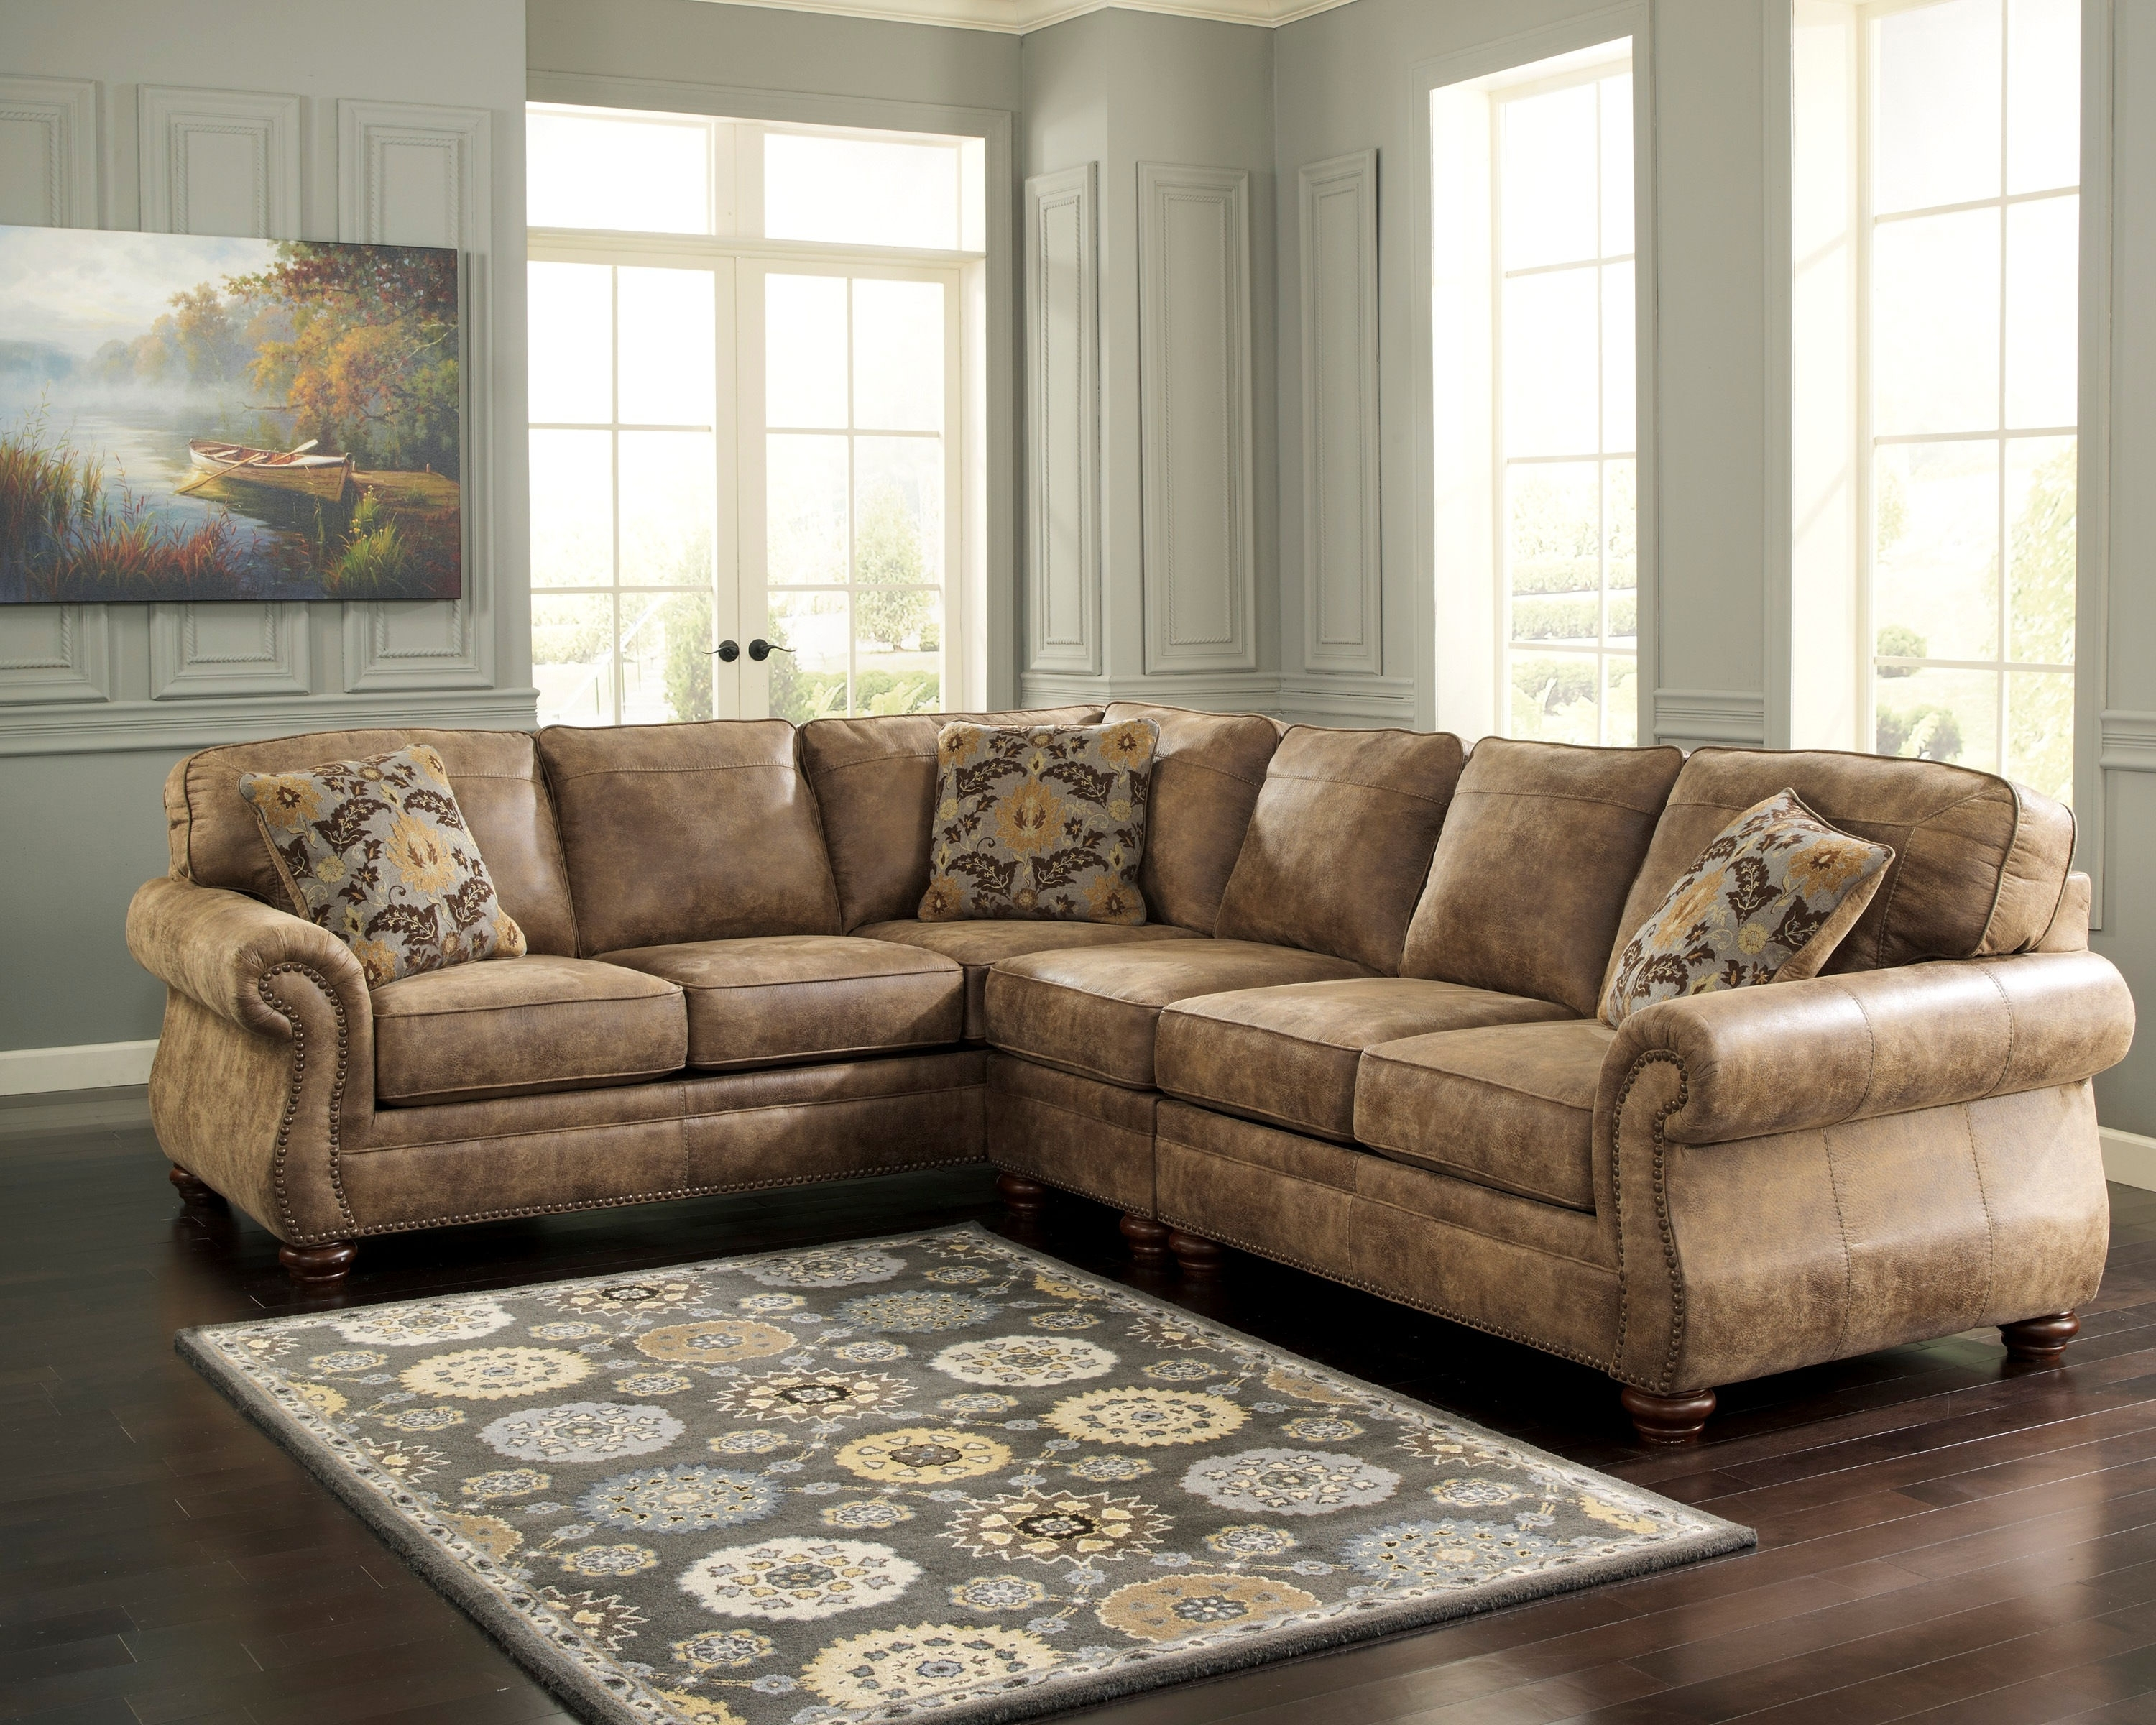 Laf Sofa Raf Loveseat | Baci Living Room With Turdur 3 Piece Sectionals With Raf Loveseat (Image 13 of 25)